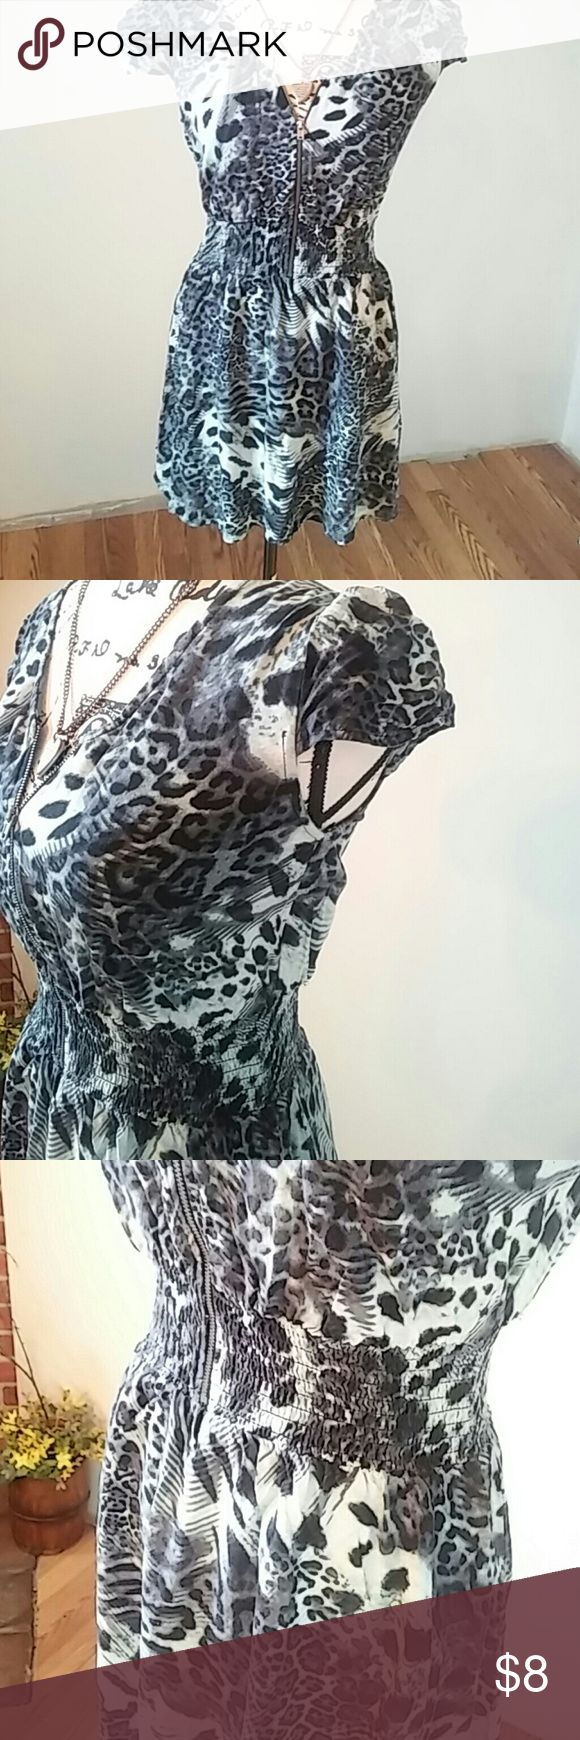 Blue Cheetah Print Dress Fun for any day. Zippered up front add a colorful tank unzip and liven it up for a night out with the girls!  **MEASUREMENTS ARE APPROXIMATE AND SUBJECT TO SLIGHT HUMAN ERROR.  Shoulder to Shoulder 14 inches Underarm to Underarm 15 inches Length 30 inches   Large  100% Rayon No Boundaries Dresses